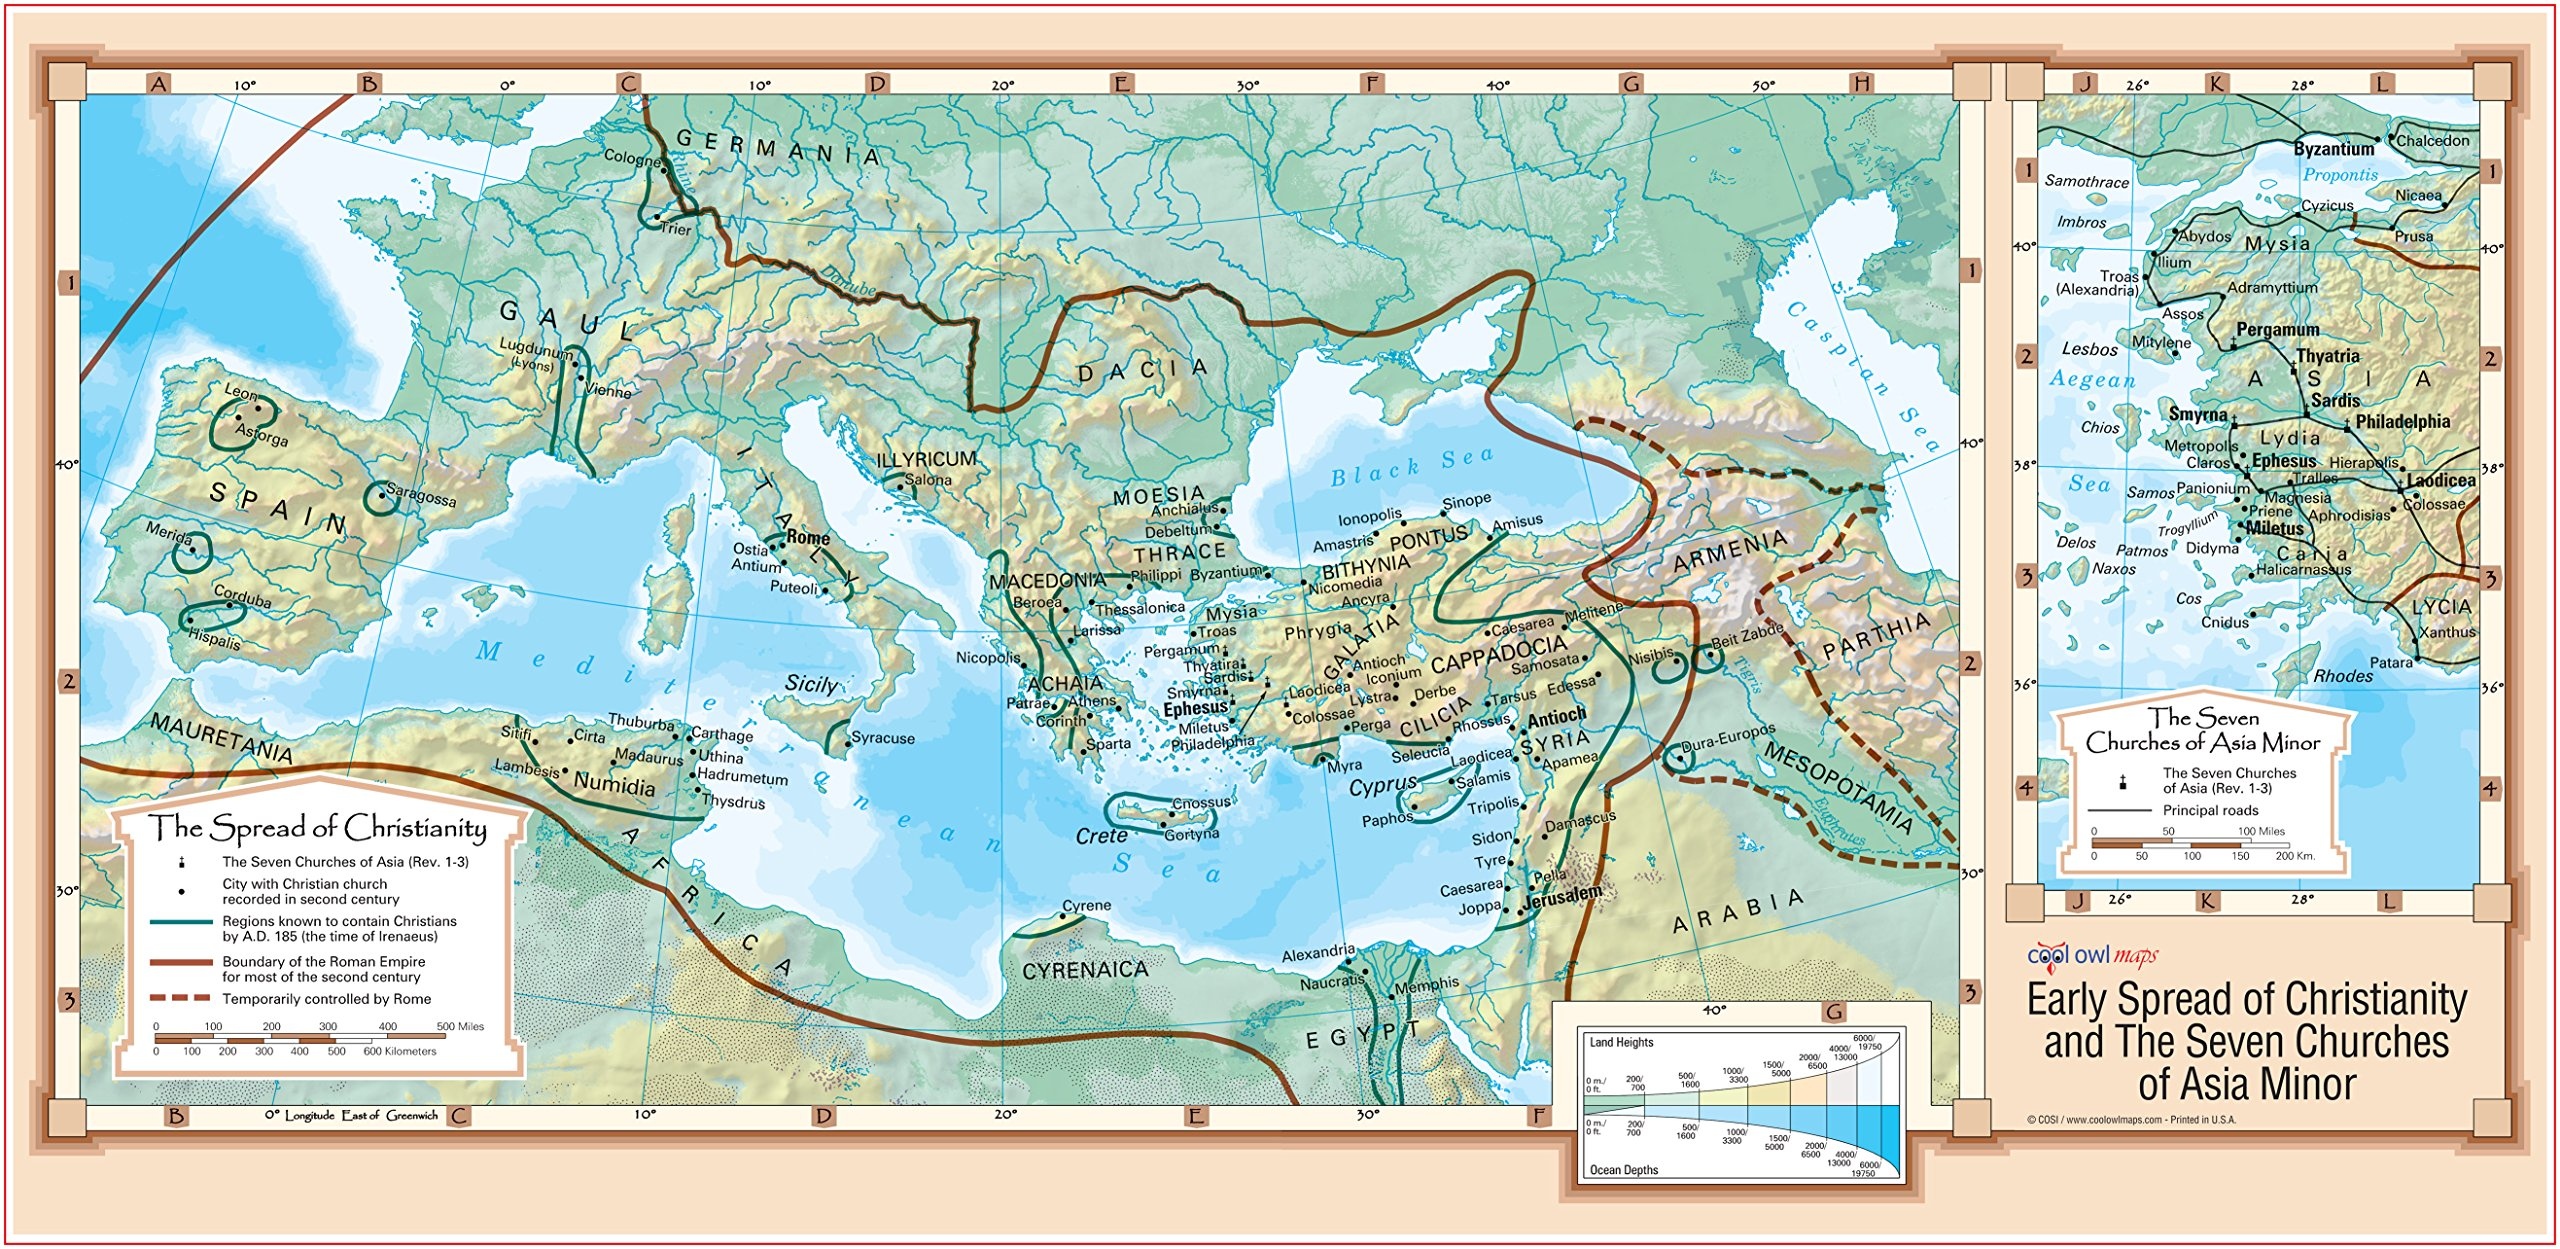 Early Spread of Christianity and The Seven Churches of Asia Minor - Wall Map Poster 36''x18'' Paper